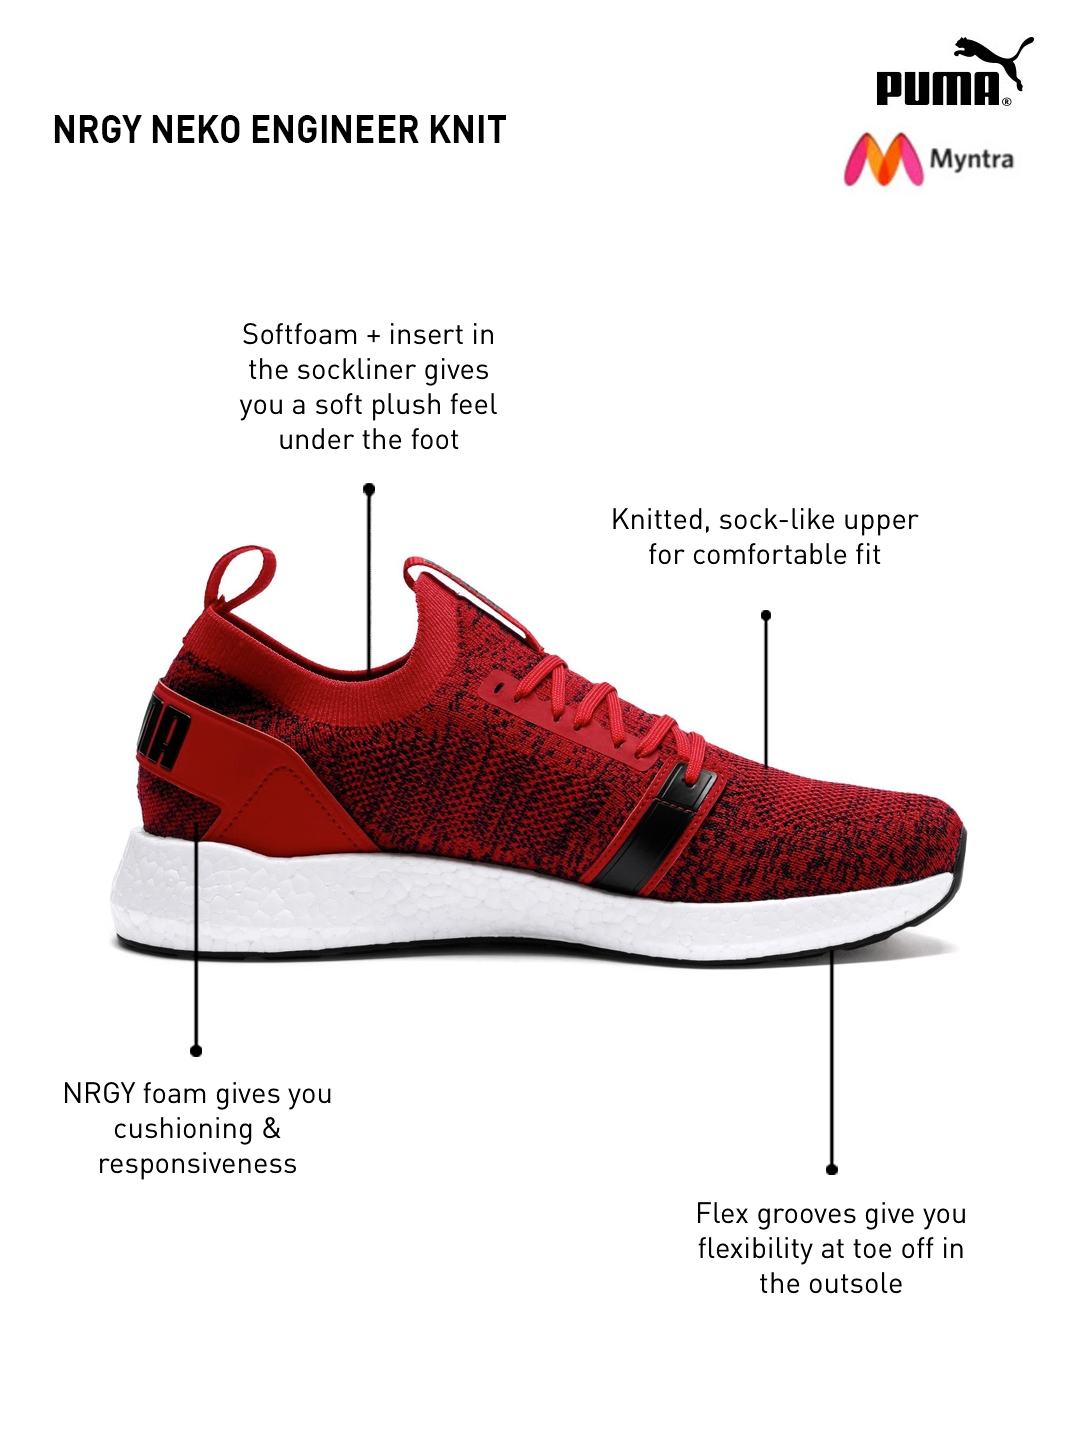 525ca074944 Buy Puma Men Red NRGY Neko Engineer Knit Running Shoes - Sports ...